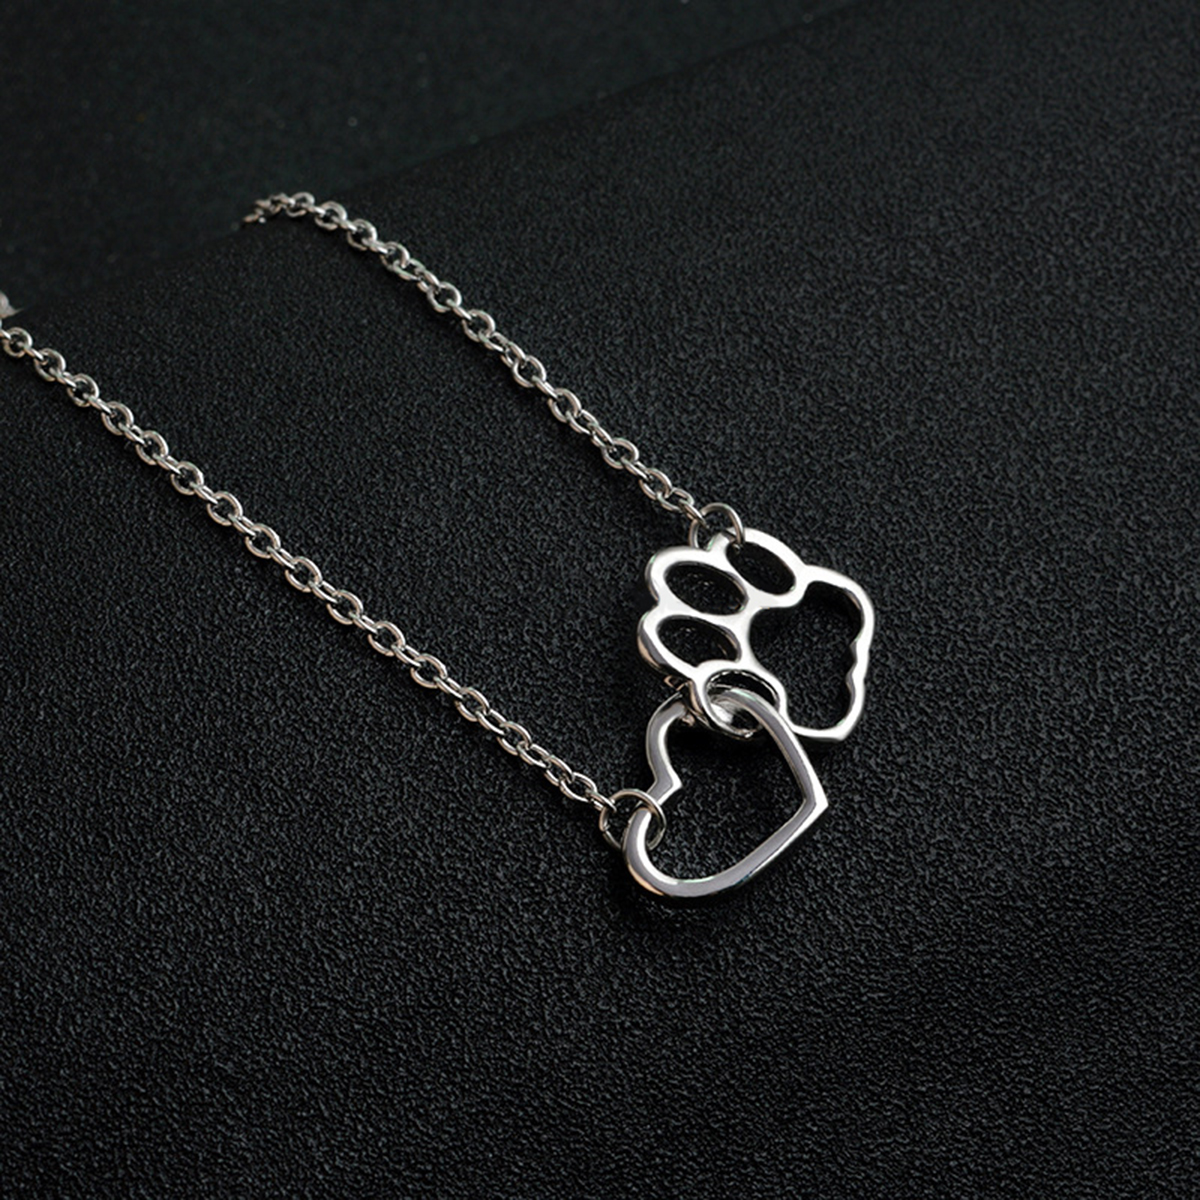 SALE HOLLOW PET PAW FOOTPRINT NECKLACES FOR CAT LOVERS-Cat Jewelry-Free Shipping SALE HOLLOW PET PAW FOOTPRINT NECKLACES FOR CAT LOVERS-Cat Jewelry-Free Shipping HTB1BZDLRpXXXXcWaFXXq6xXFXXXZ